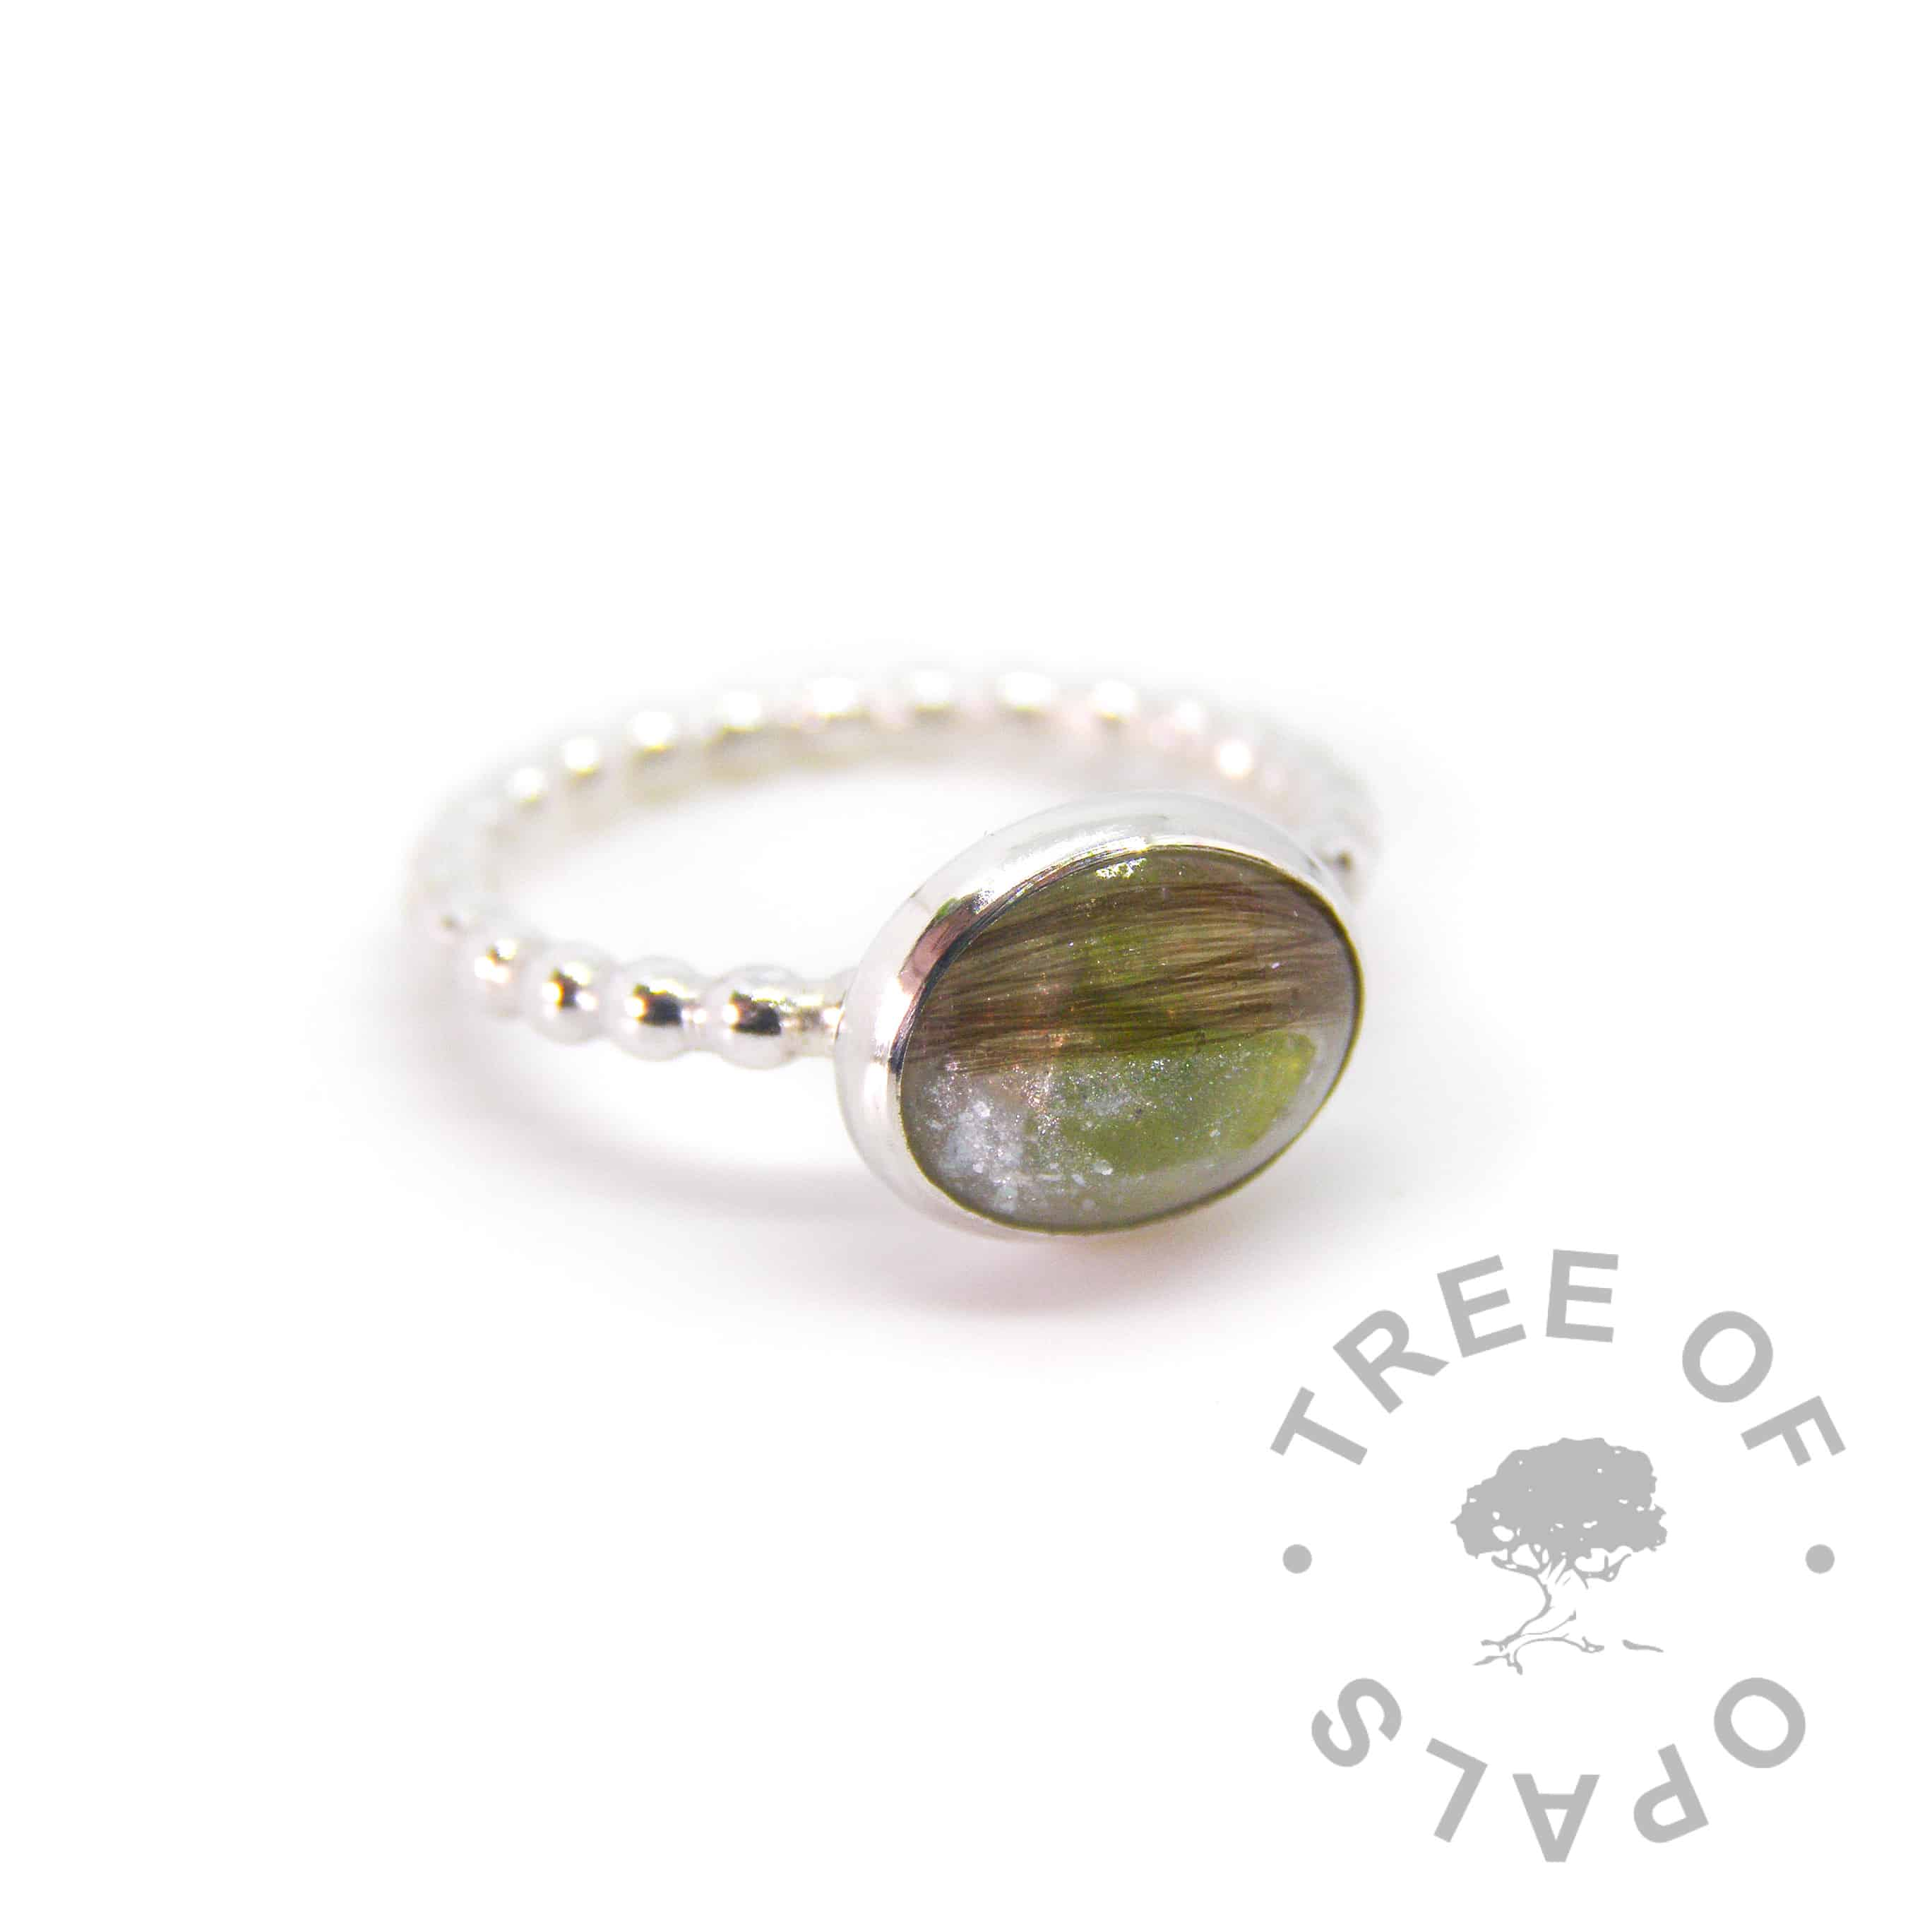 lock of hair ring with peridot August birthstone, unicorn white sparkle mix on a bubble wire band, handmade by Tree of Opals in solid sterling silver